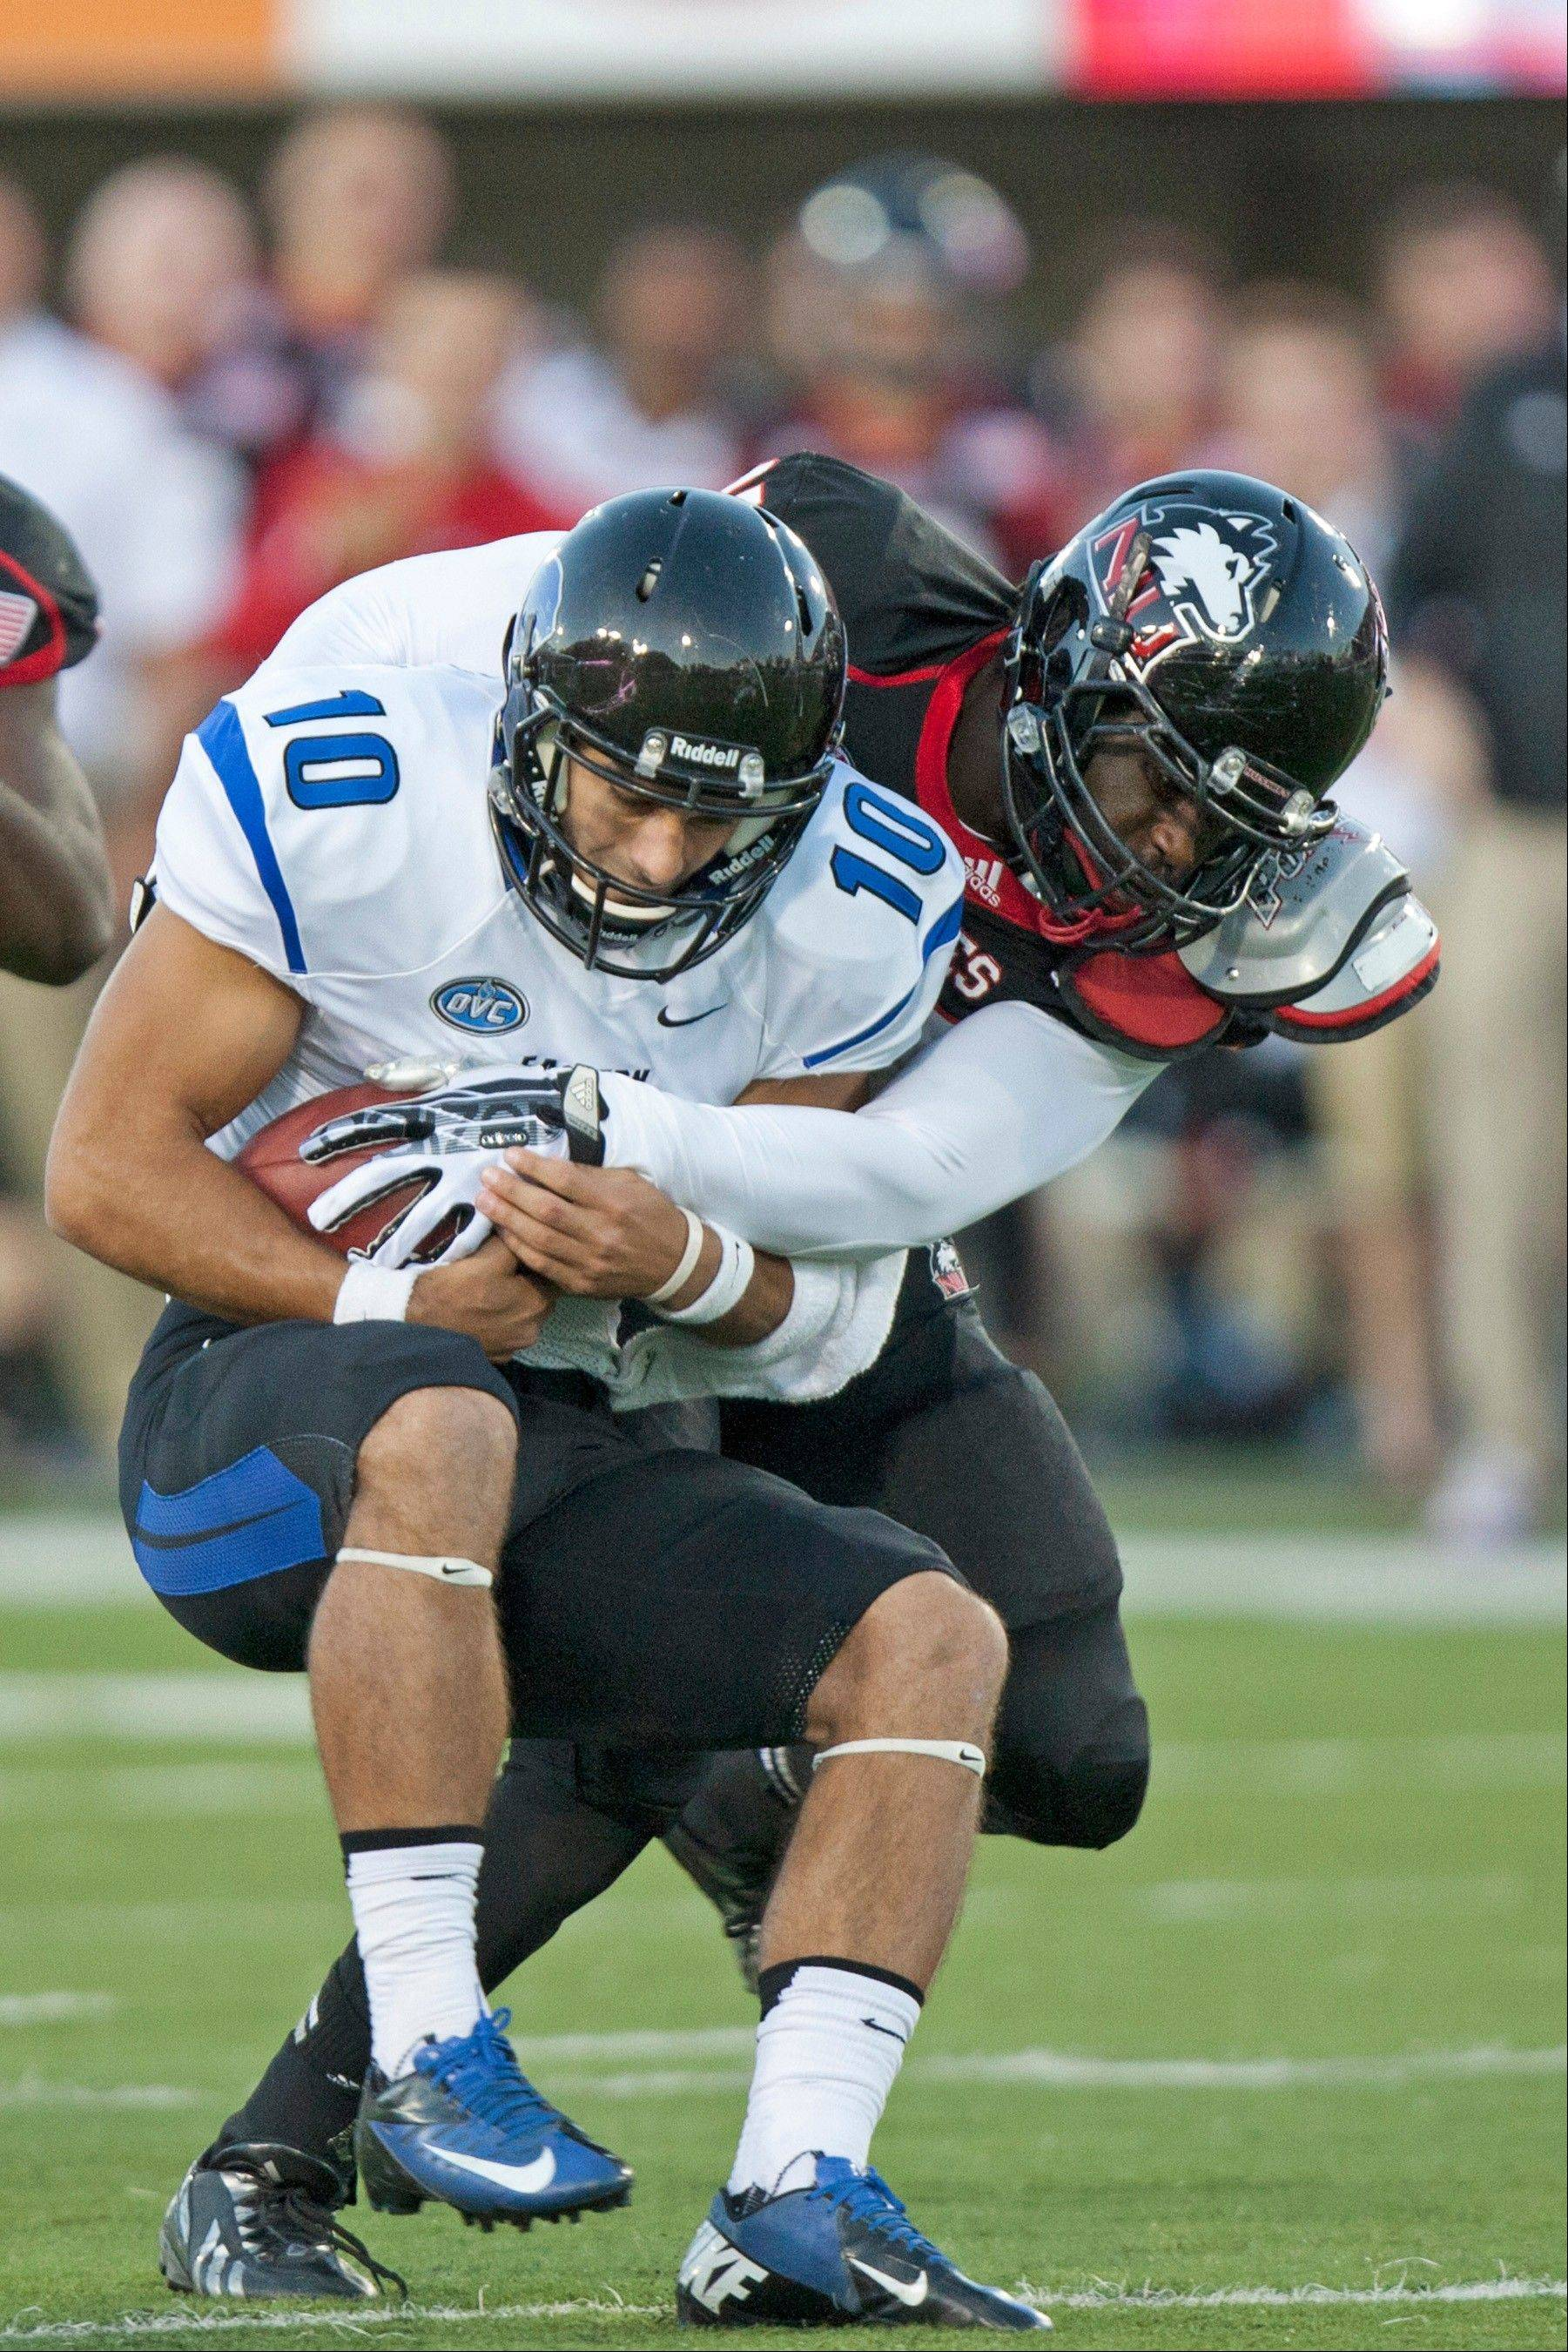 Perez Ford of Northern Illinois tackles Eastern Illinois quarterback Jimmy Garoppolo in their high-scoring game Saturday. Ford leads NIU with 3.5 sacks on the season. Garoppolo, a Rolling Meadows grad, had 6 touchdown passes against NIU.